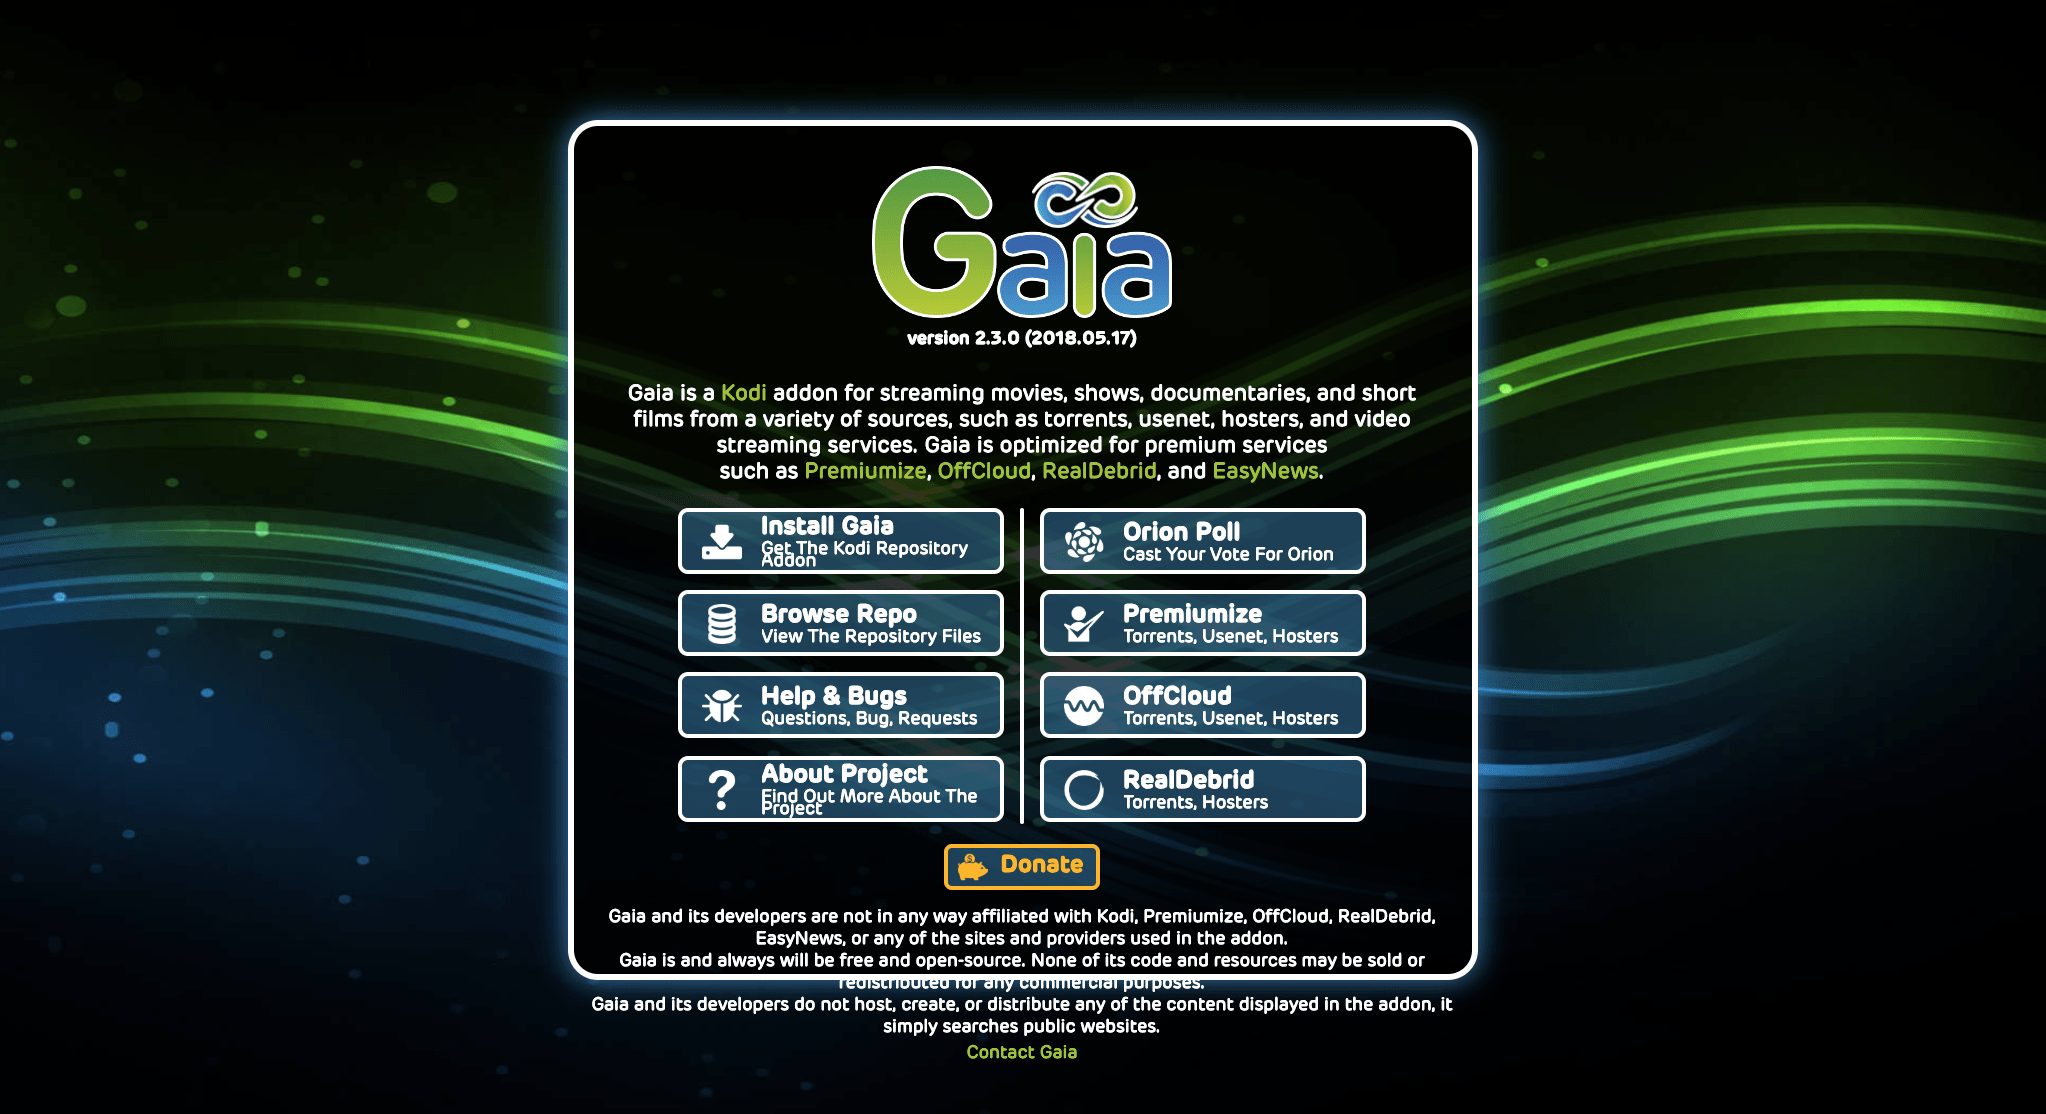 Step by Step Guide to Install the Gaia Add-On for Kodi